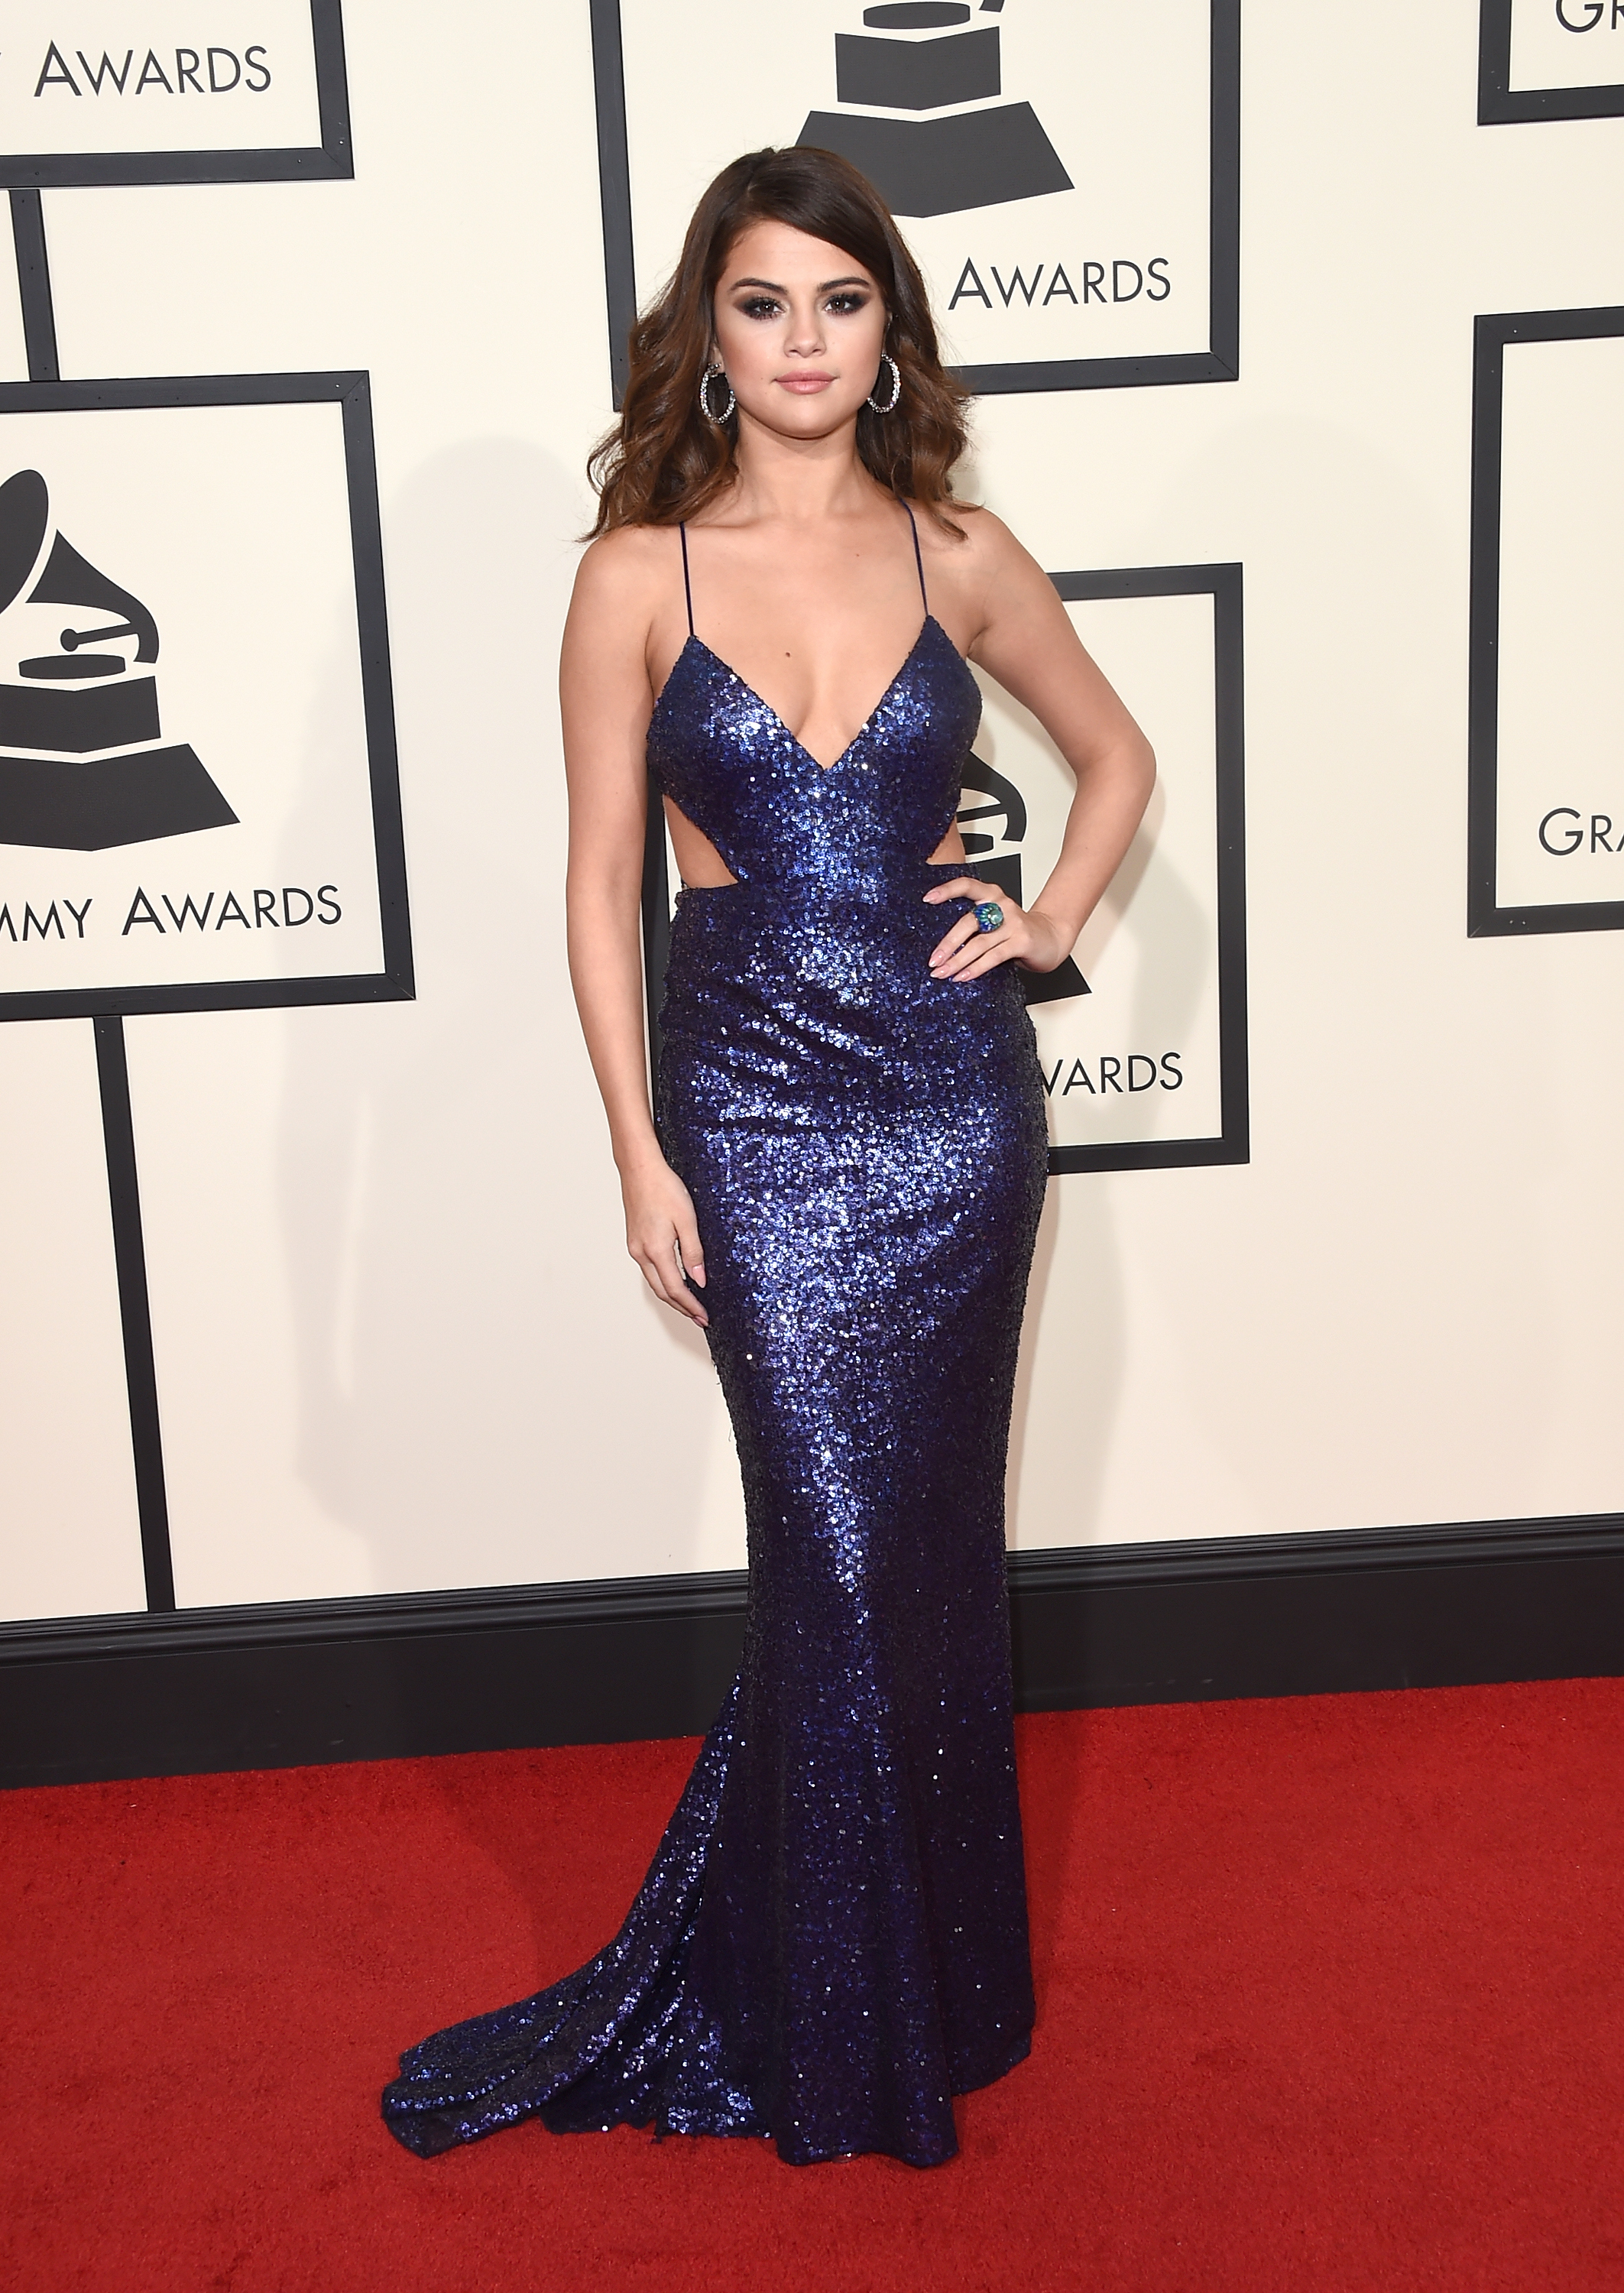 LOS ANGELES, CA - FEBRUARY 15: Singer Selena Gomez attends The 58th GRAMMY Awards at Staples Center on February 15, 2016 in Los Angeles, California. (Photo by Jason Merritt/Getty Images for NARAS)